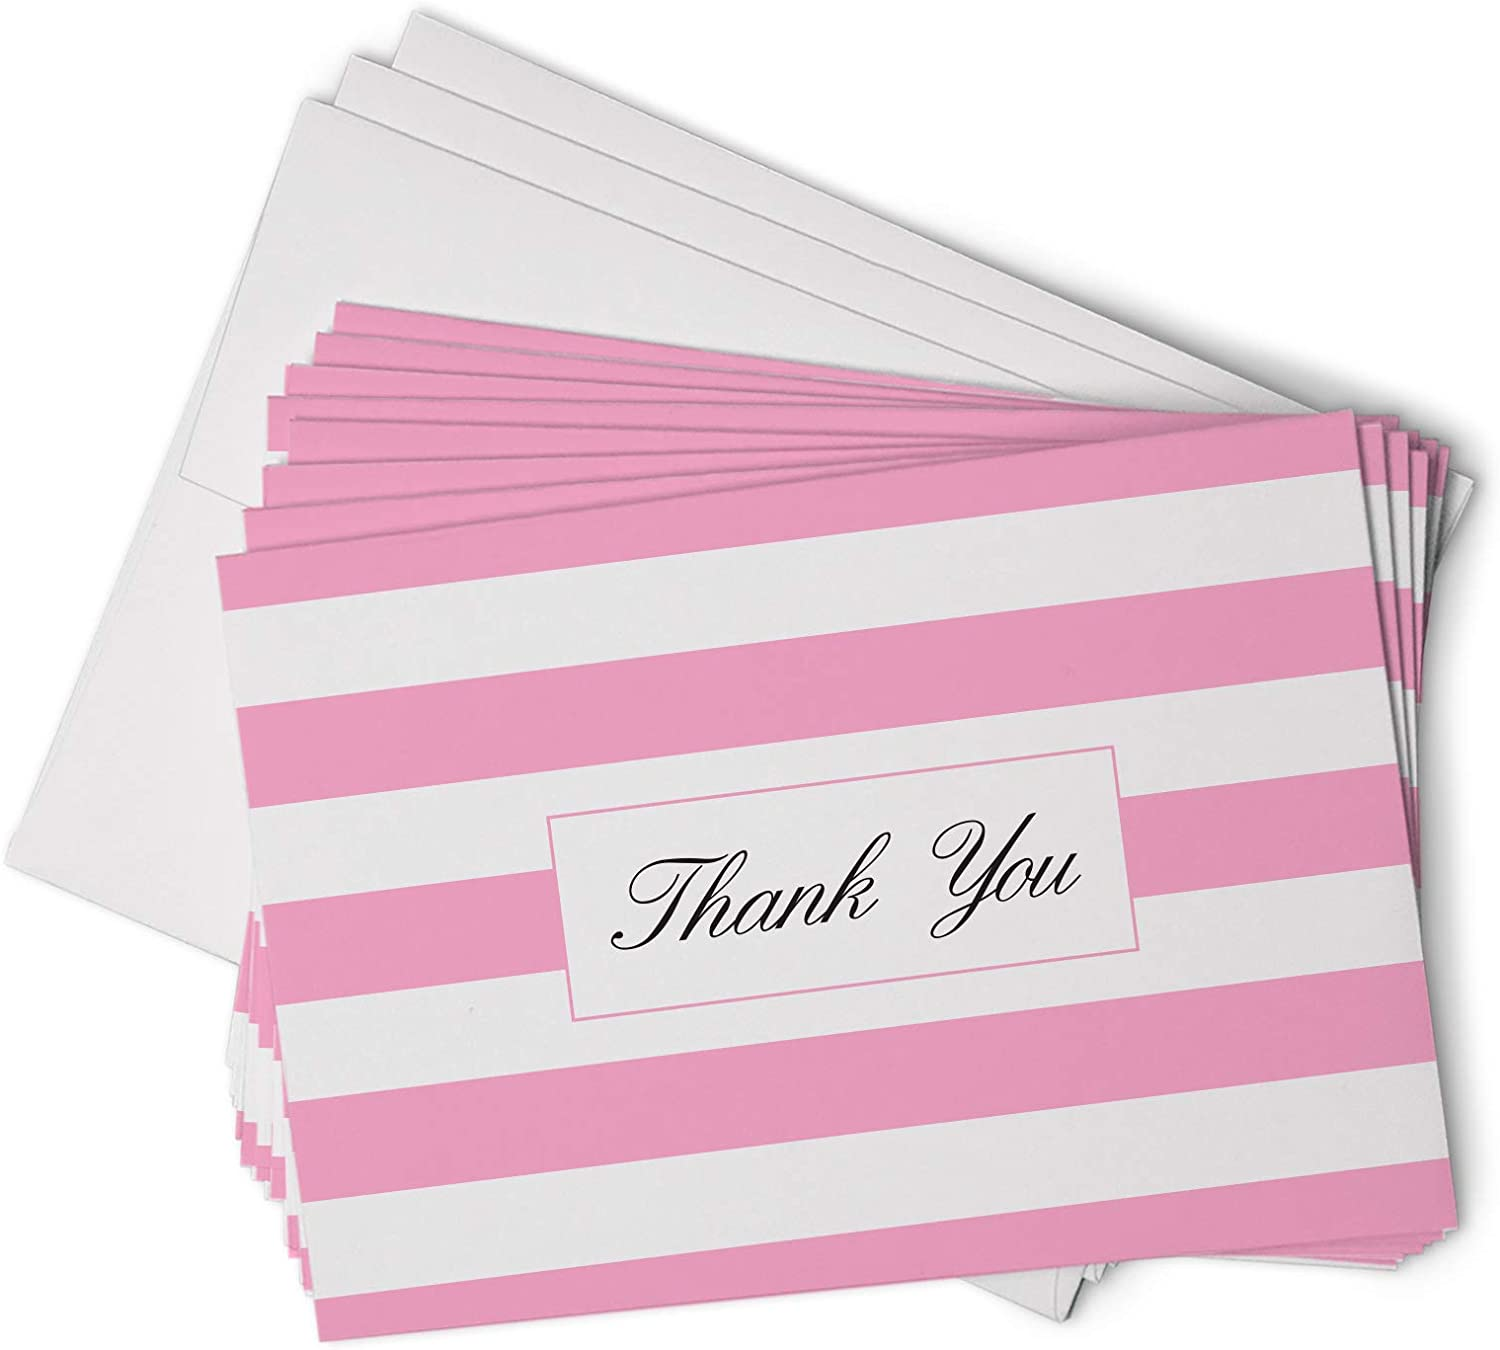 Pink Striped Thank You Cards - 48 Classic Note Cards with Envelopes - Perfect for Special Events & Businesses